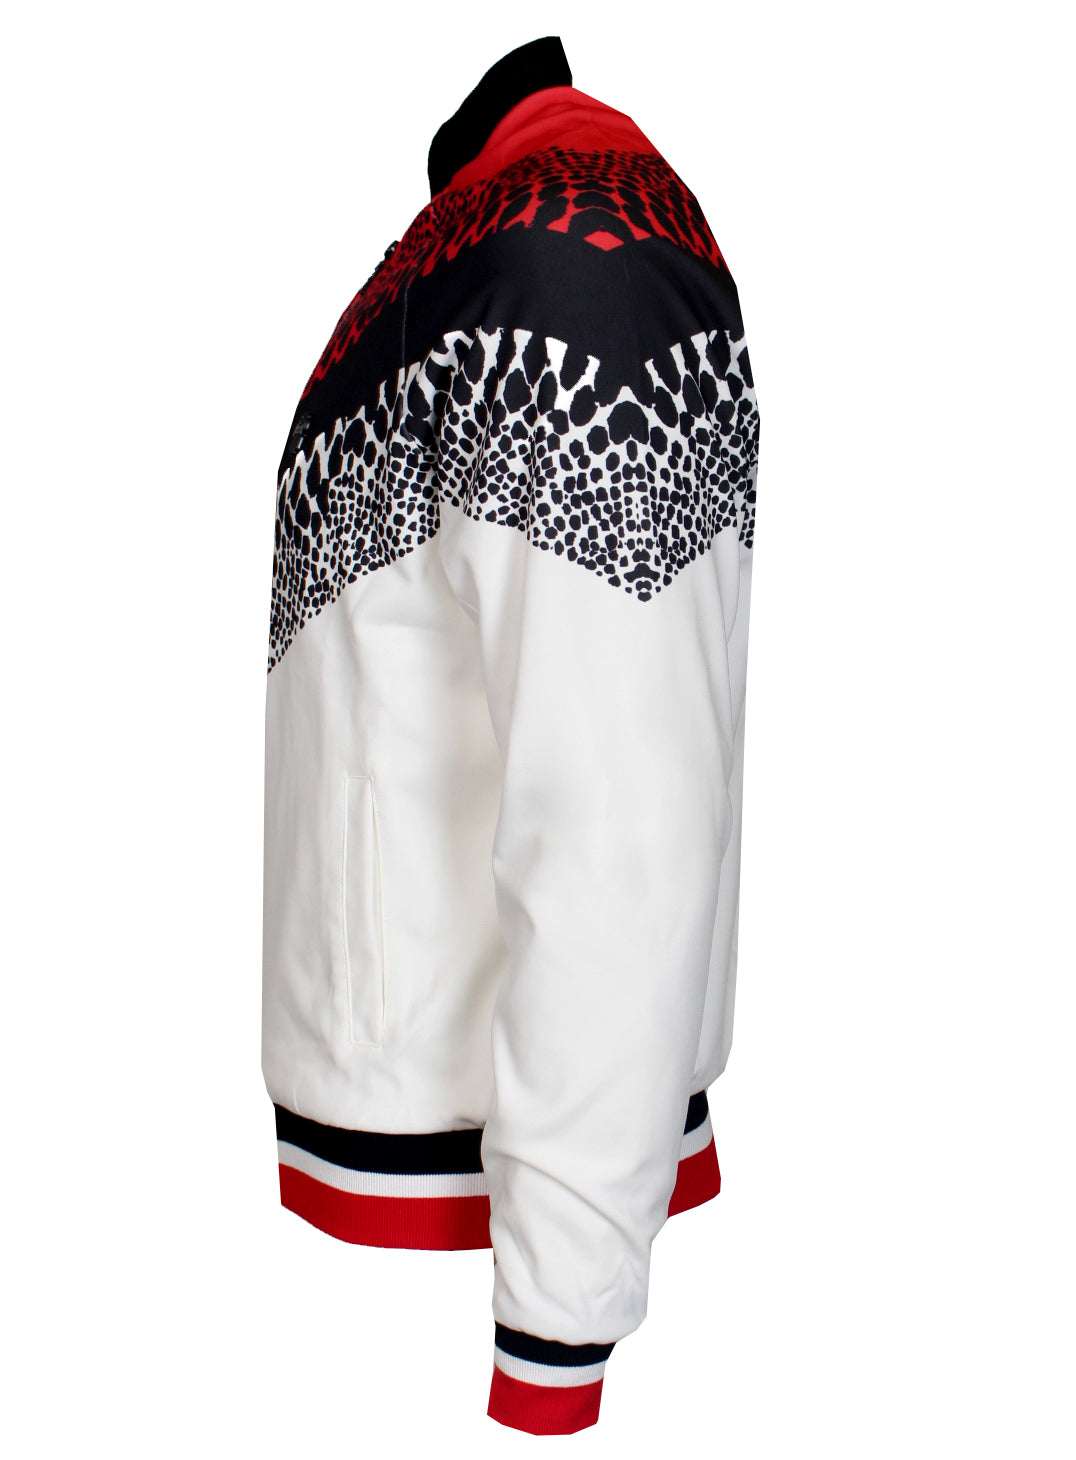 KASH Track Jacket | White